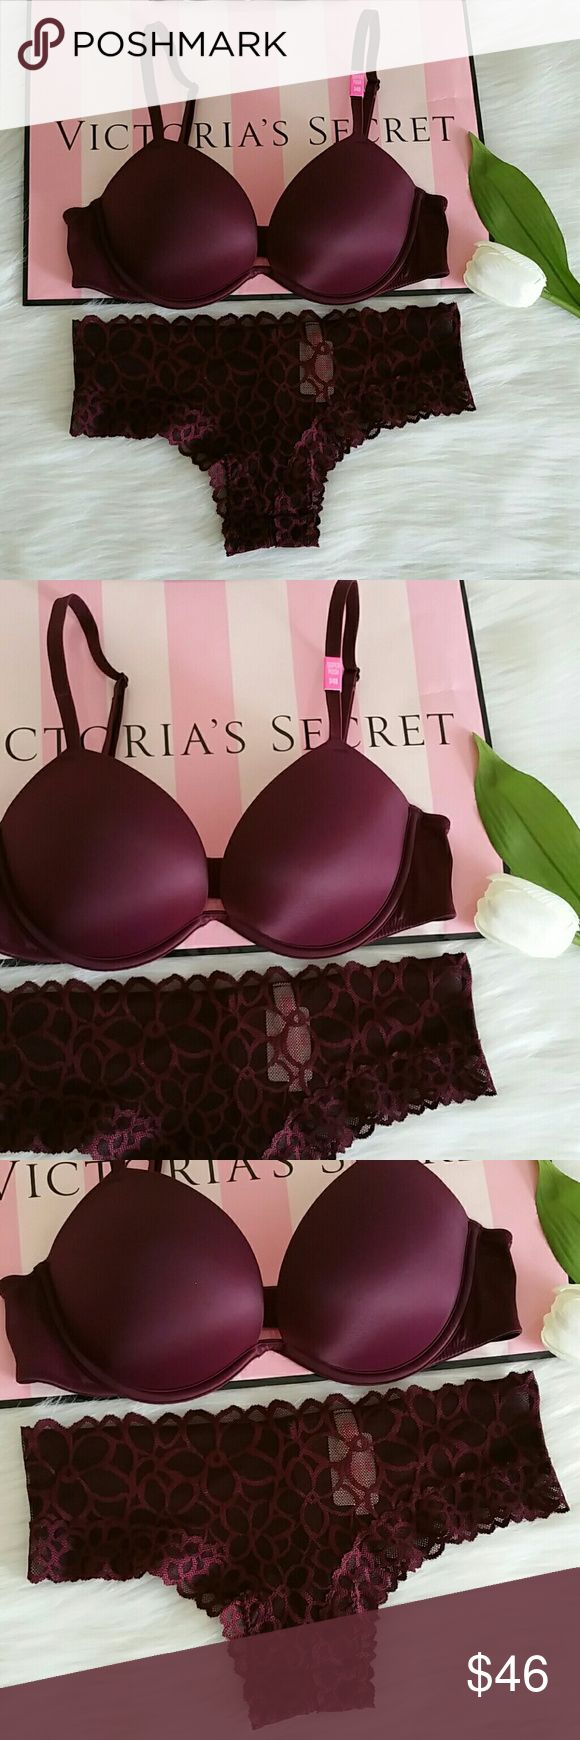 NWT NEVER WORN PINK VS SUPER PUSH UP BRA+PANTY. Beautiful pink victoria secret  brand new Super push up bra +panty  Bra size 34B Panty size S  Smoke and pet free home.  Fast shipping + extra gift.  Panty size M available. PINK Victoria's Secret Intimates & Sleepwear Bras